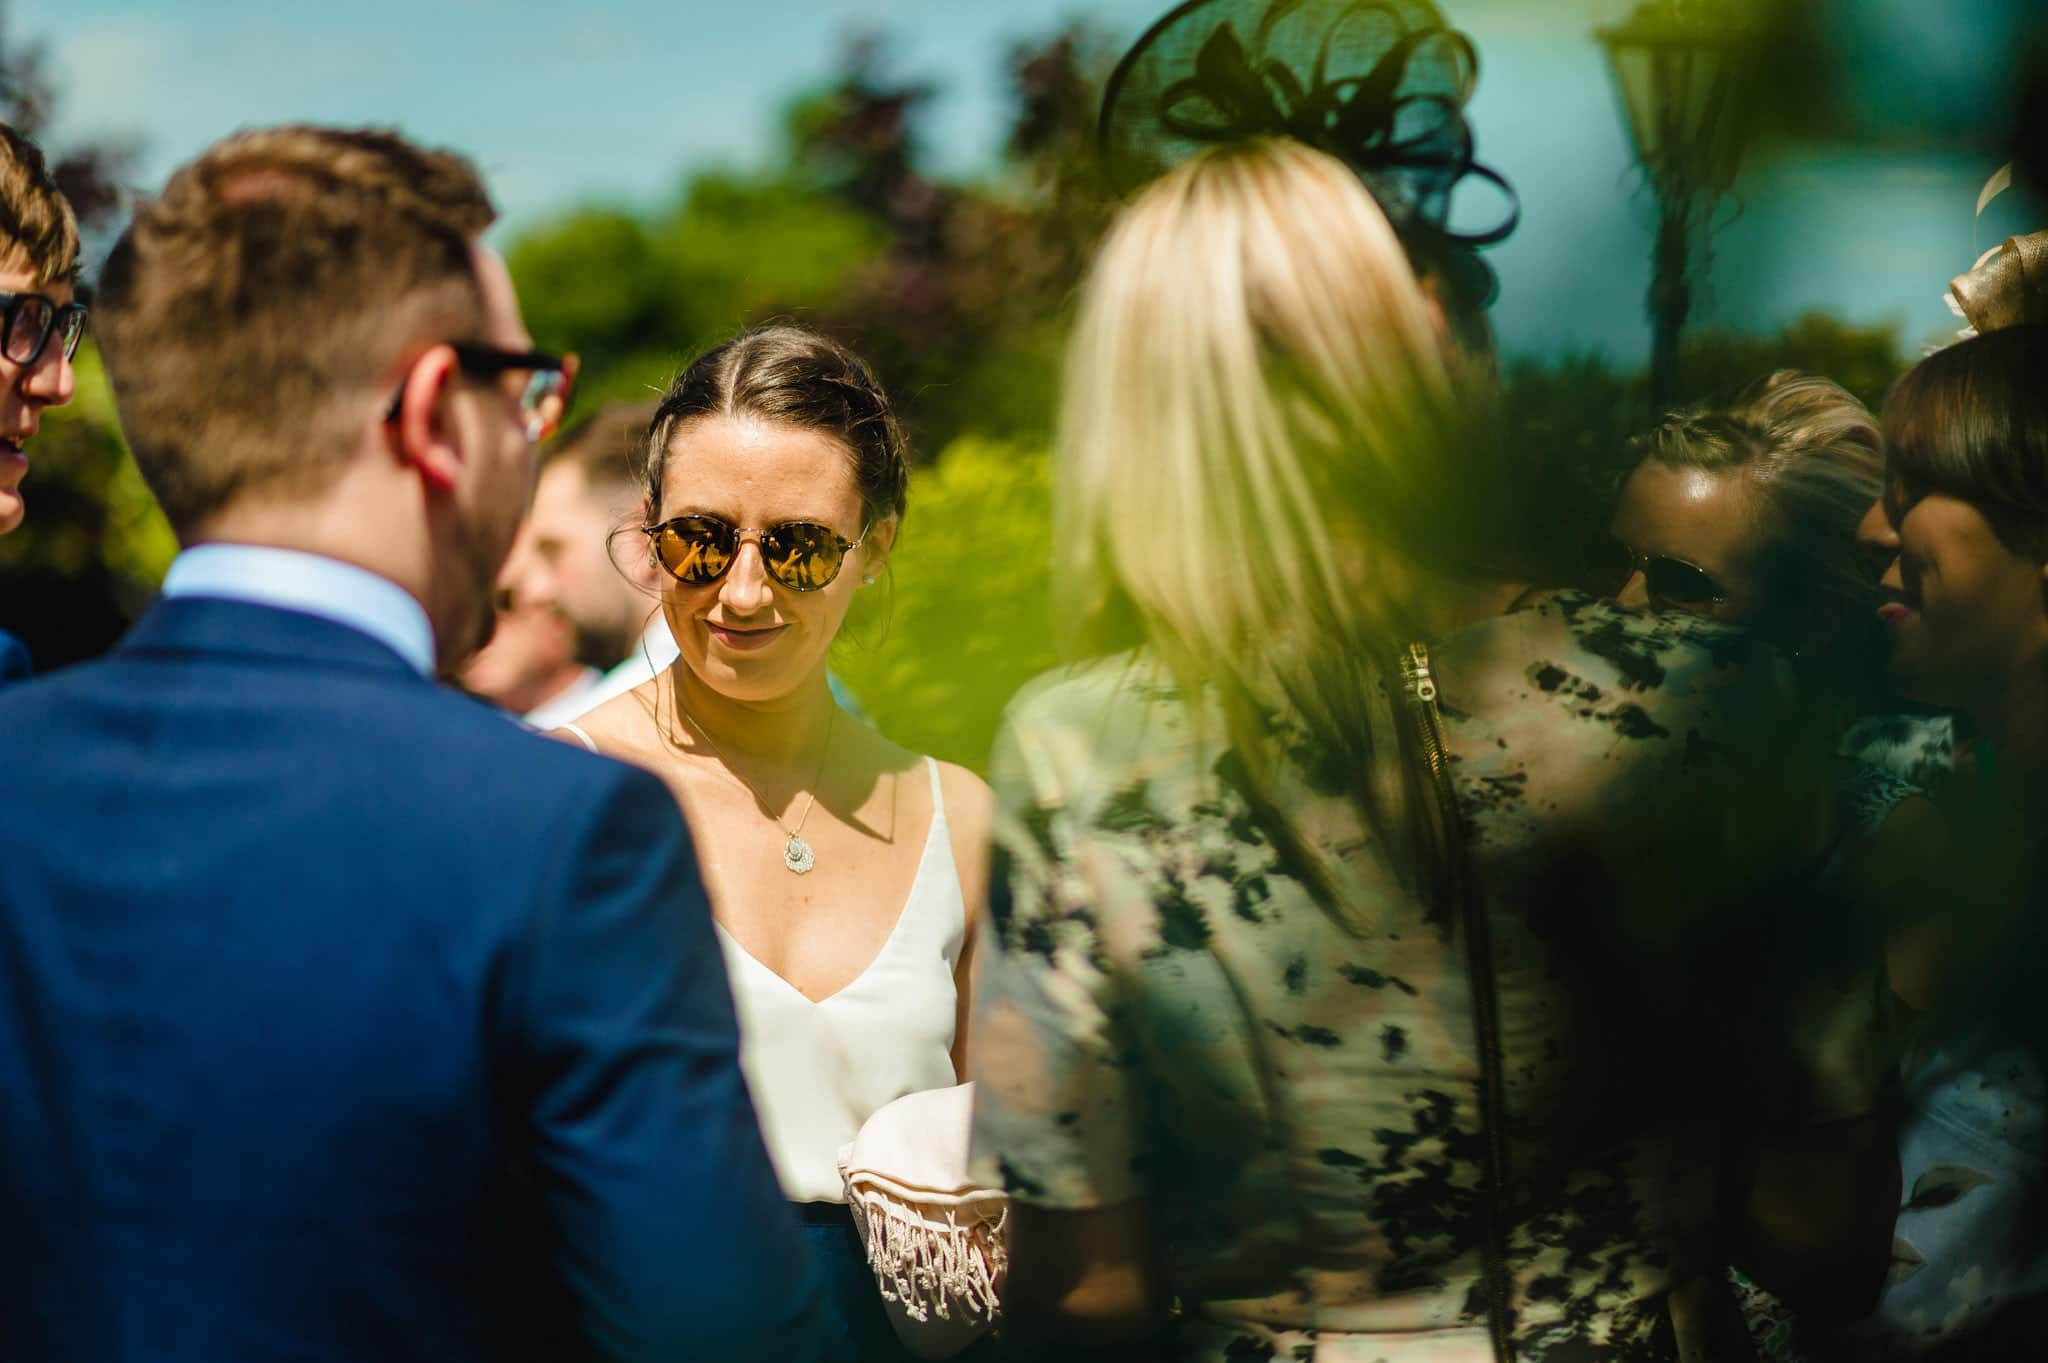 Wedding at Redhouse Barn in Stoke Prior, Worcestershire 5